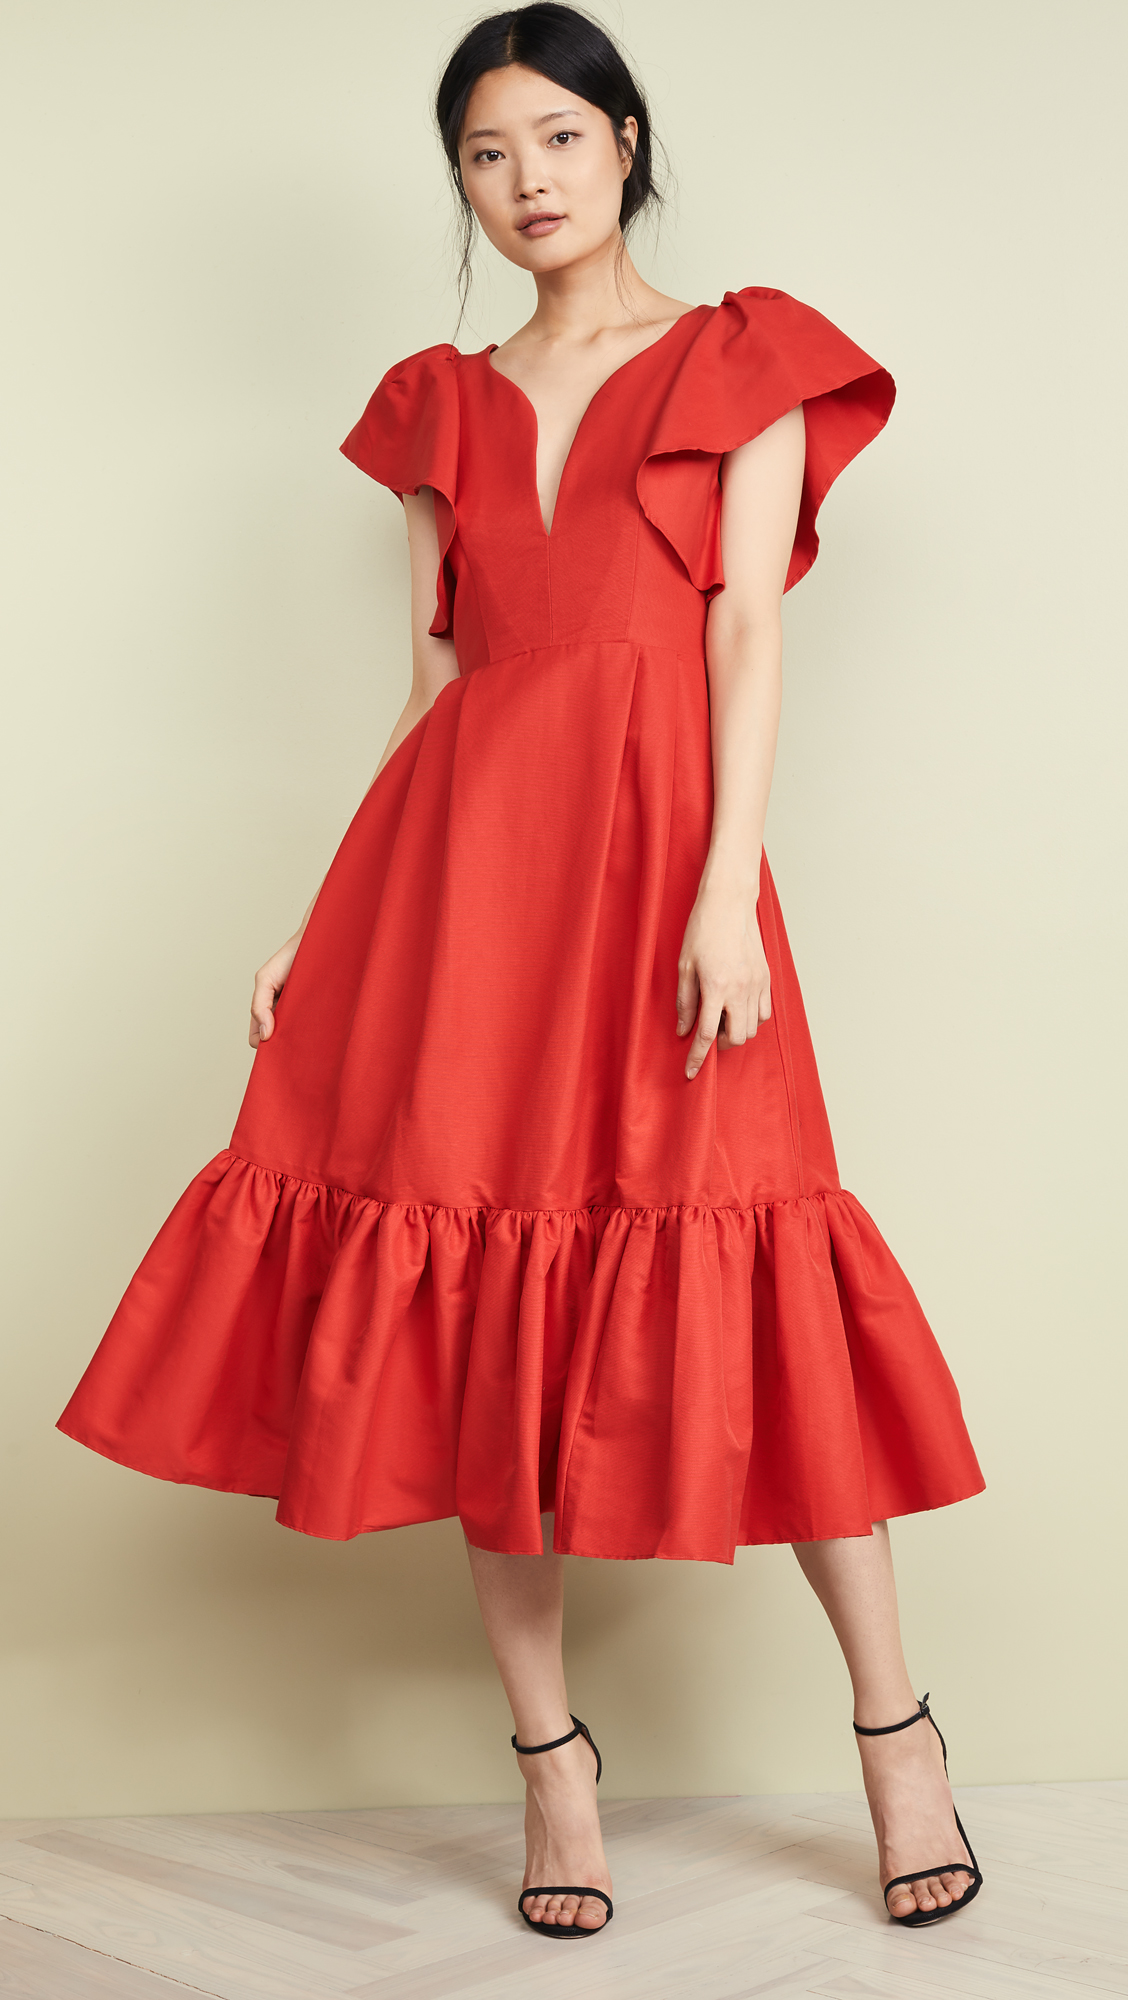 Red Ruffle Faille Dress